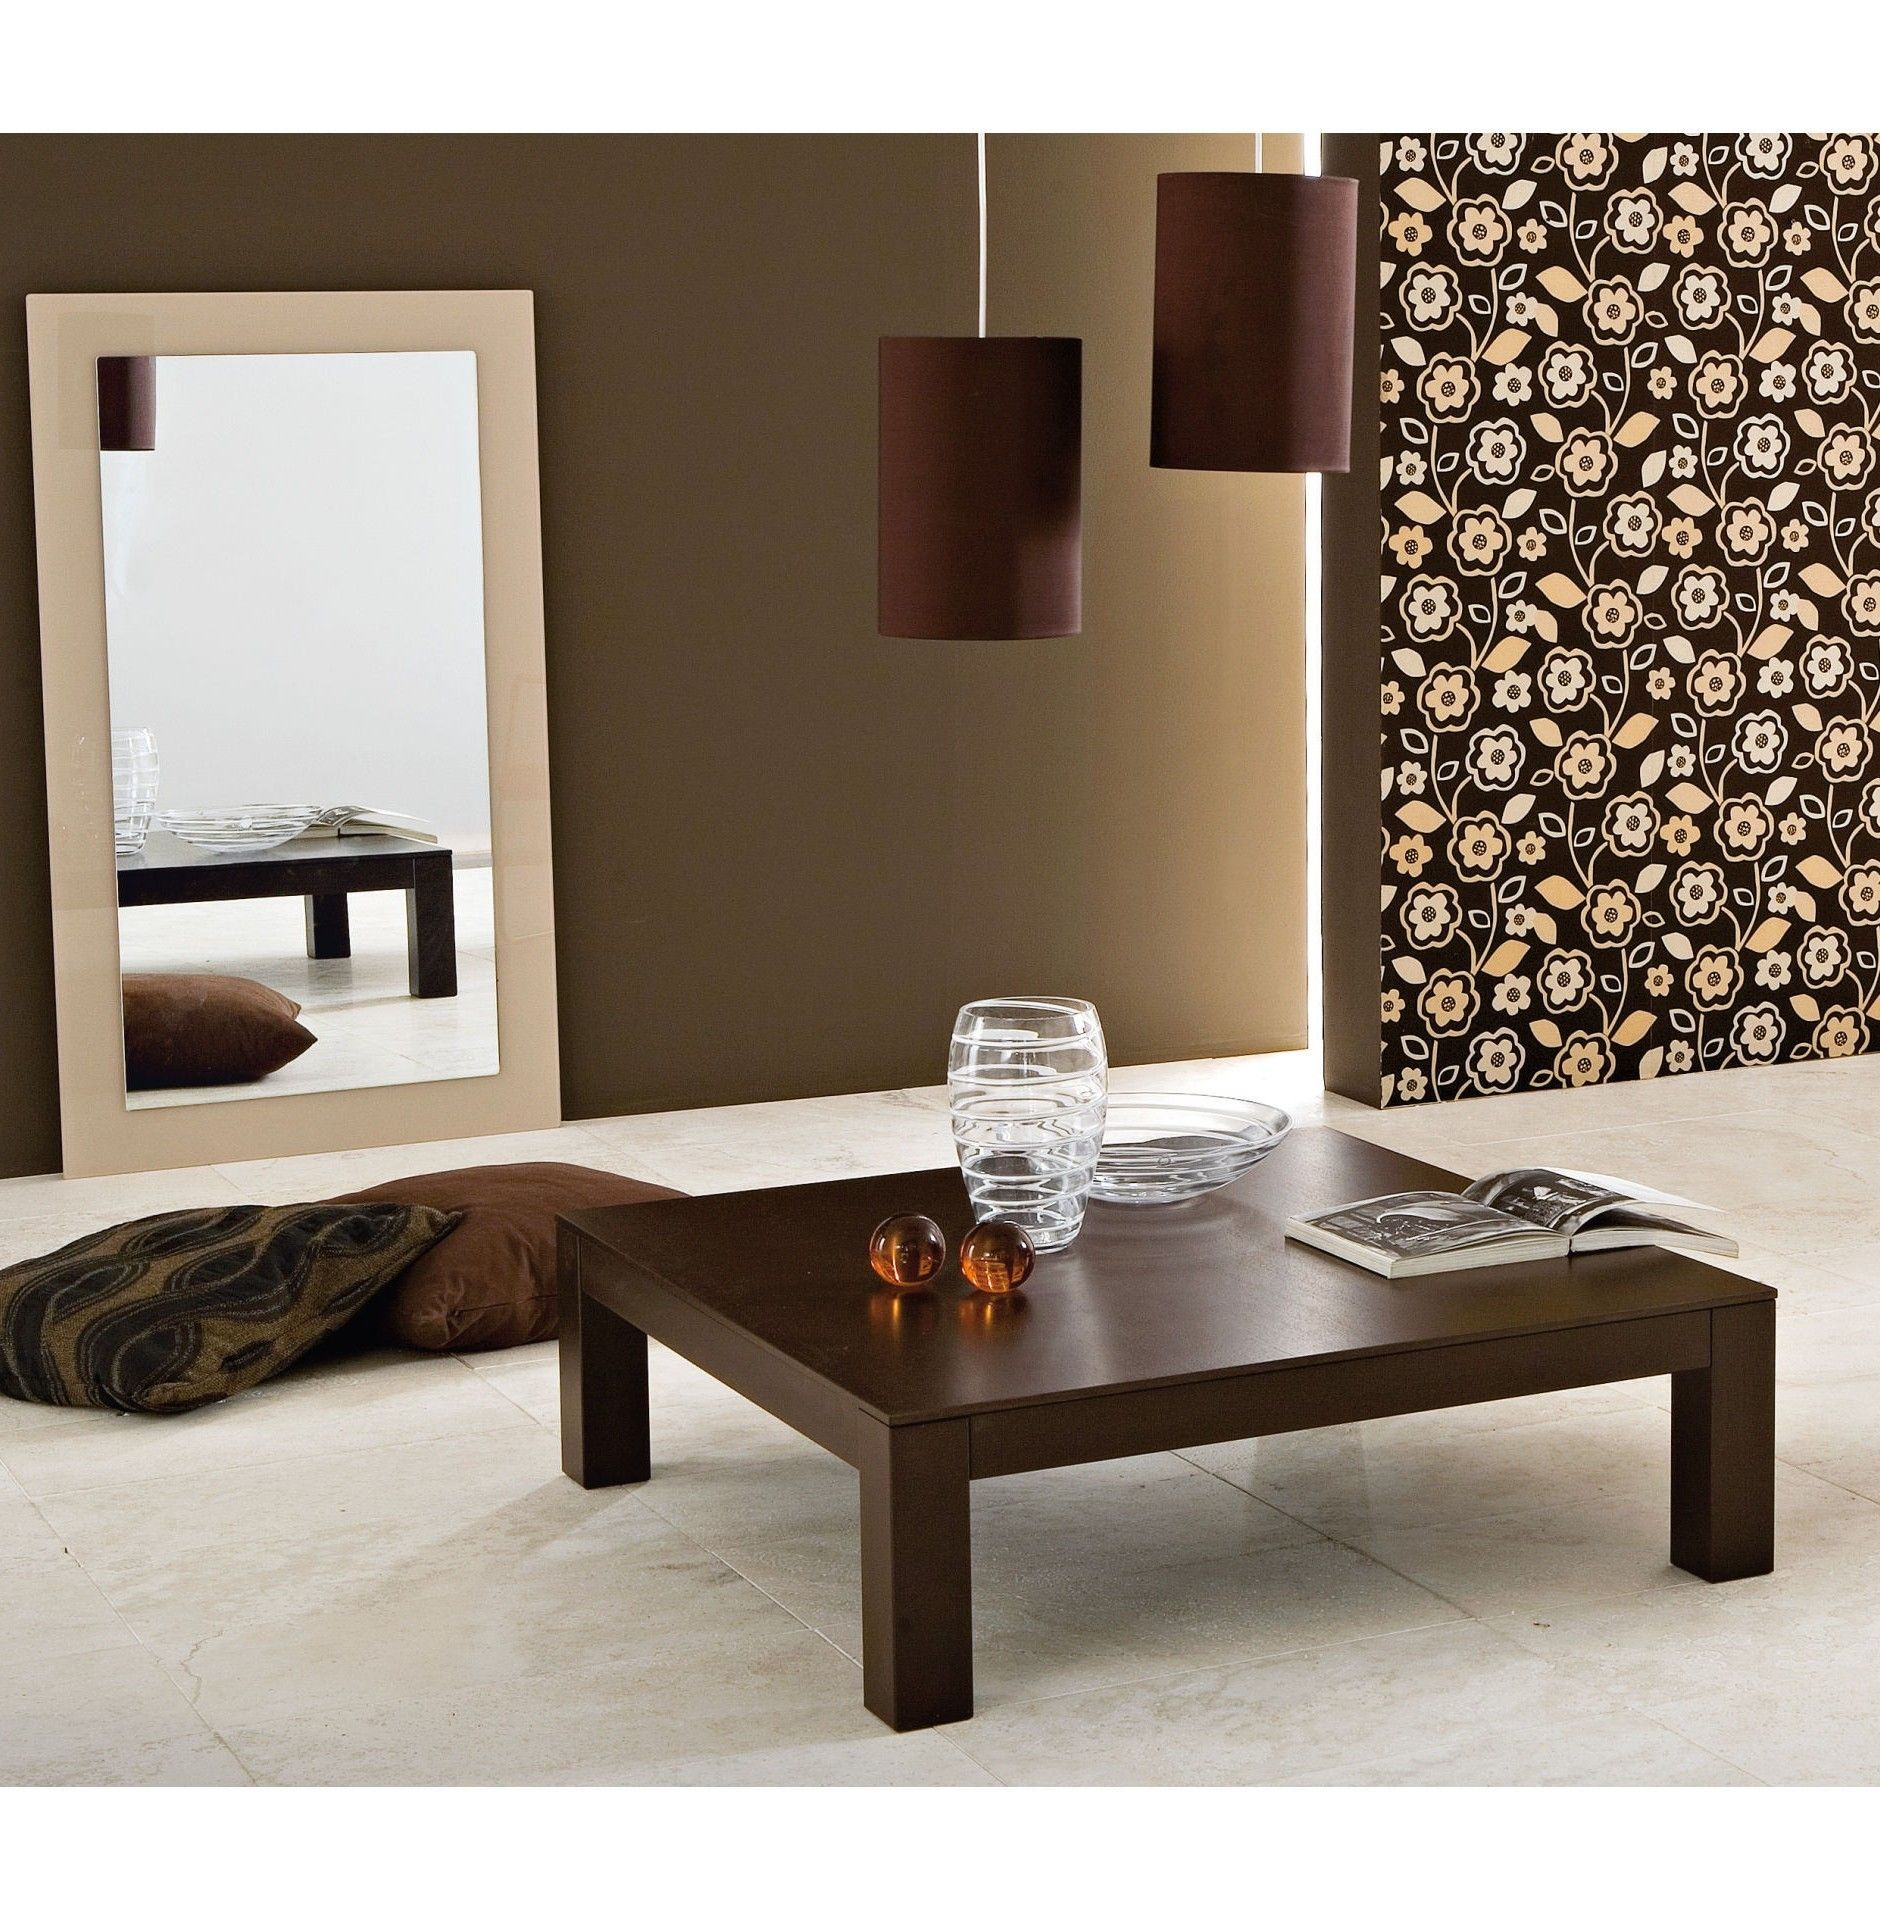 Modern home design · elegant coffee table and living room design http www variety co